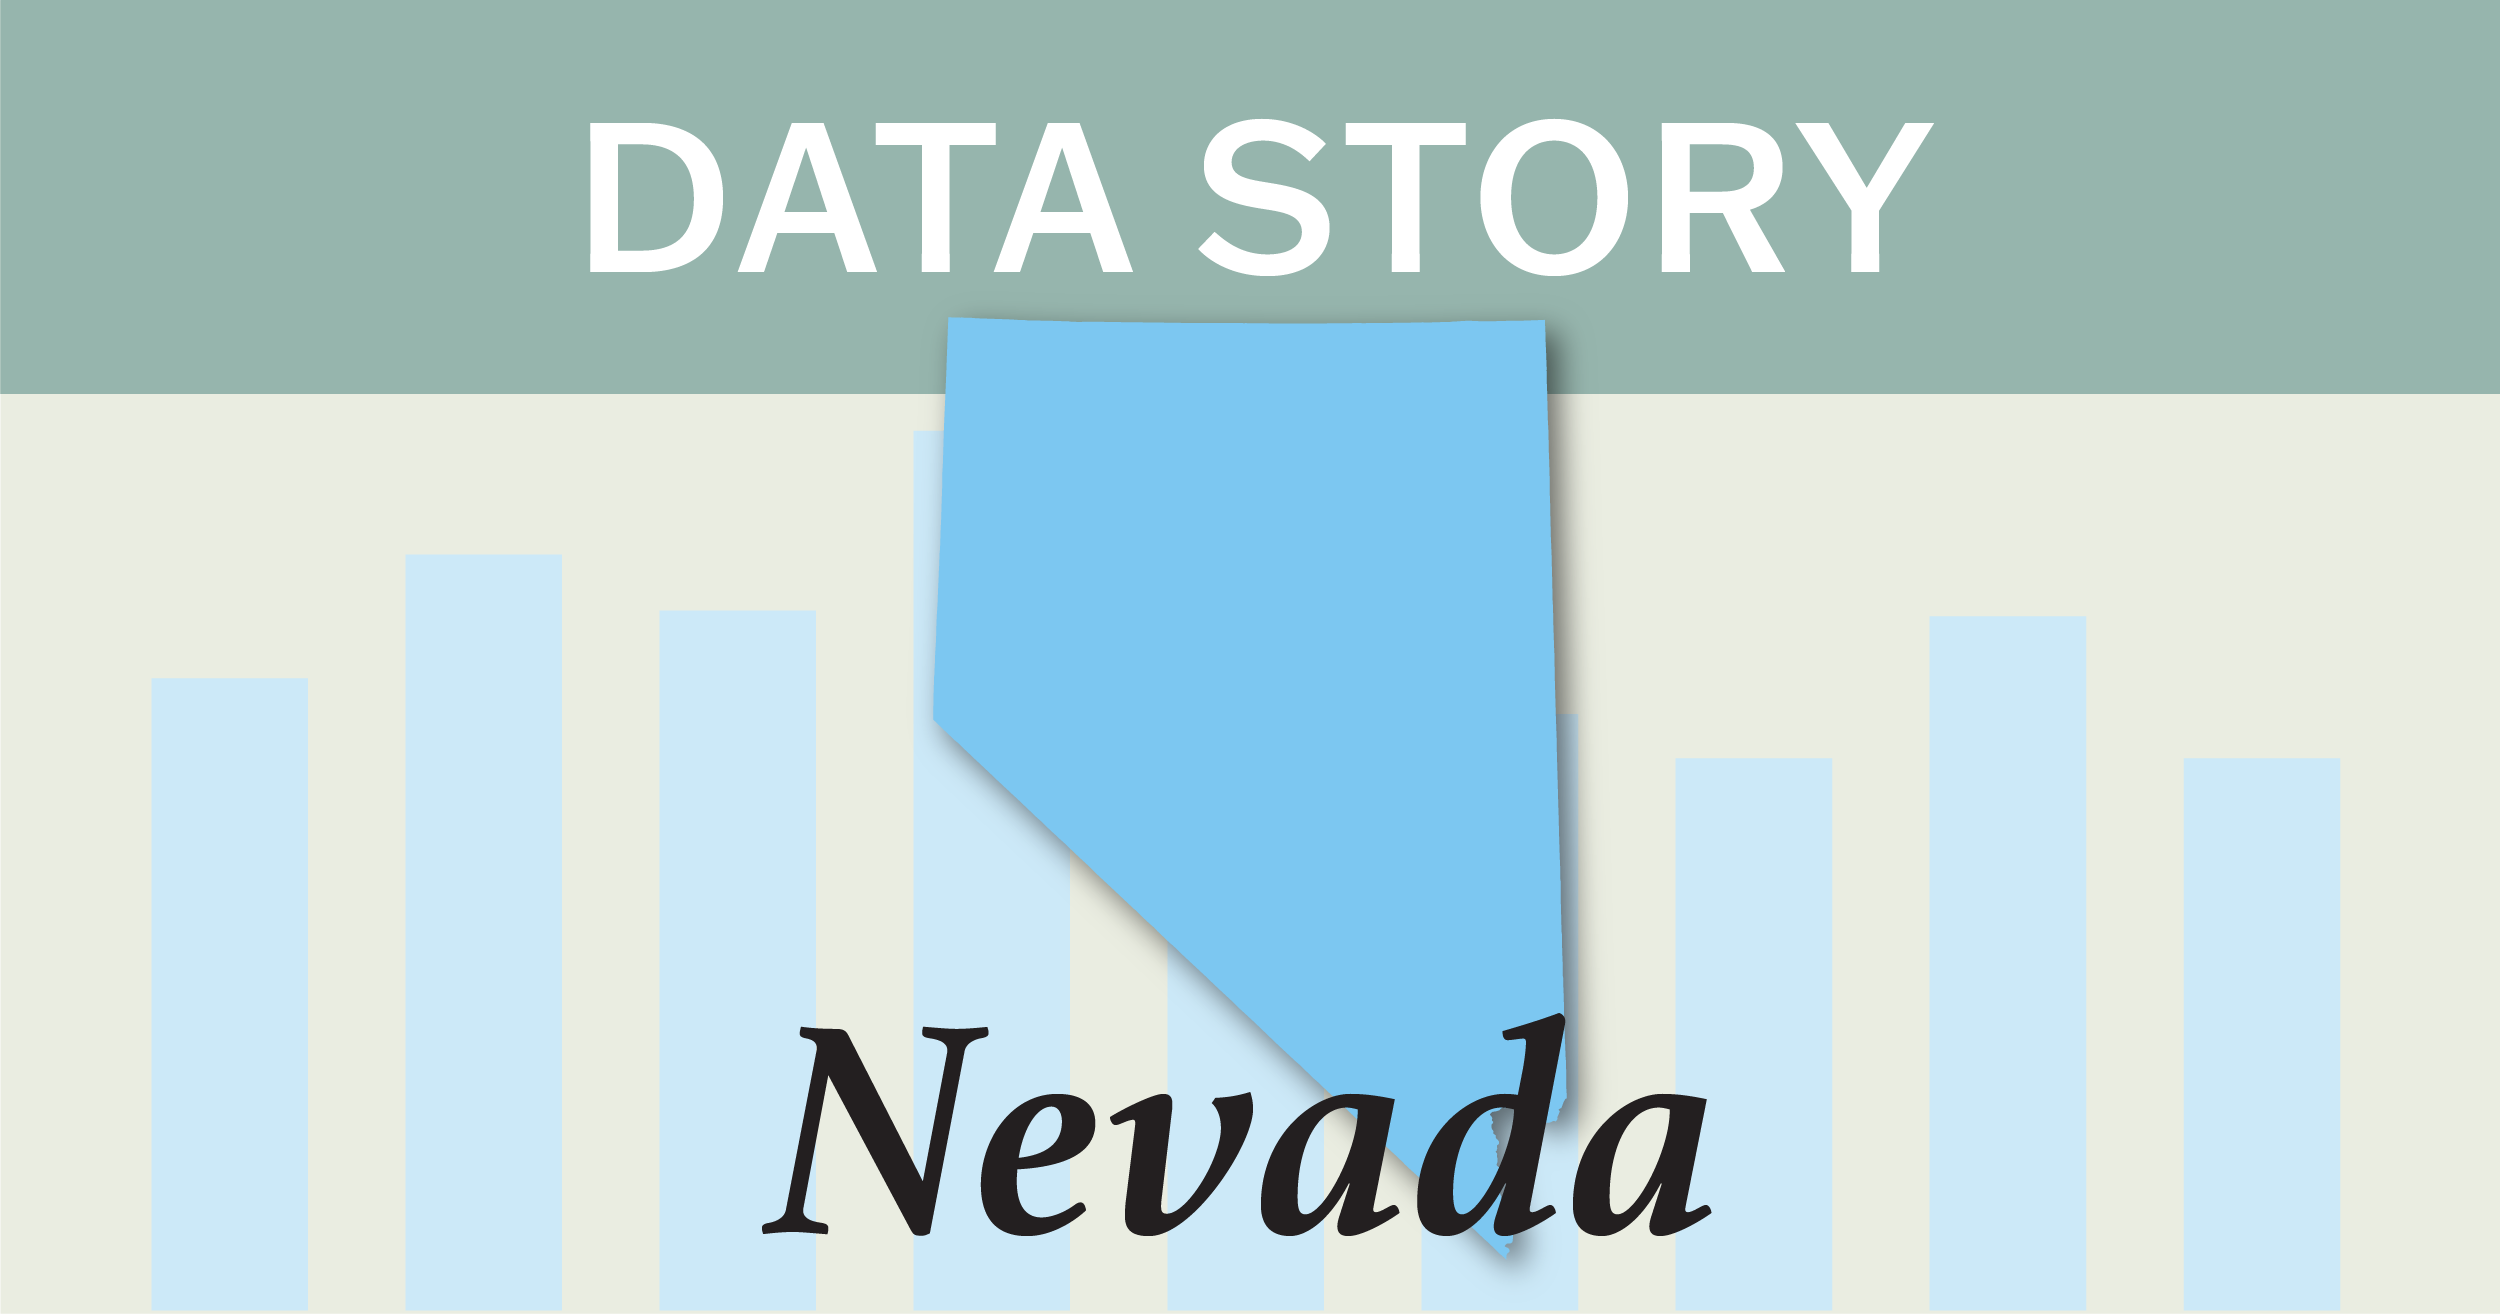 Outline of the state of Nevada.